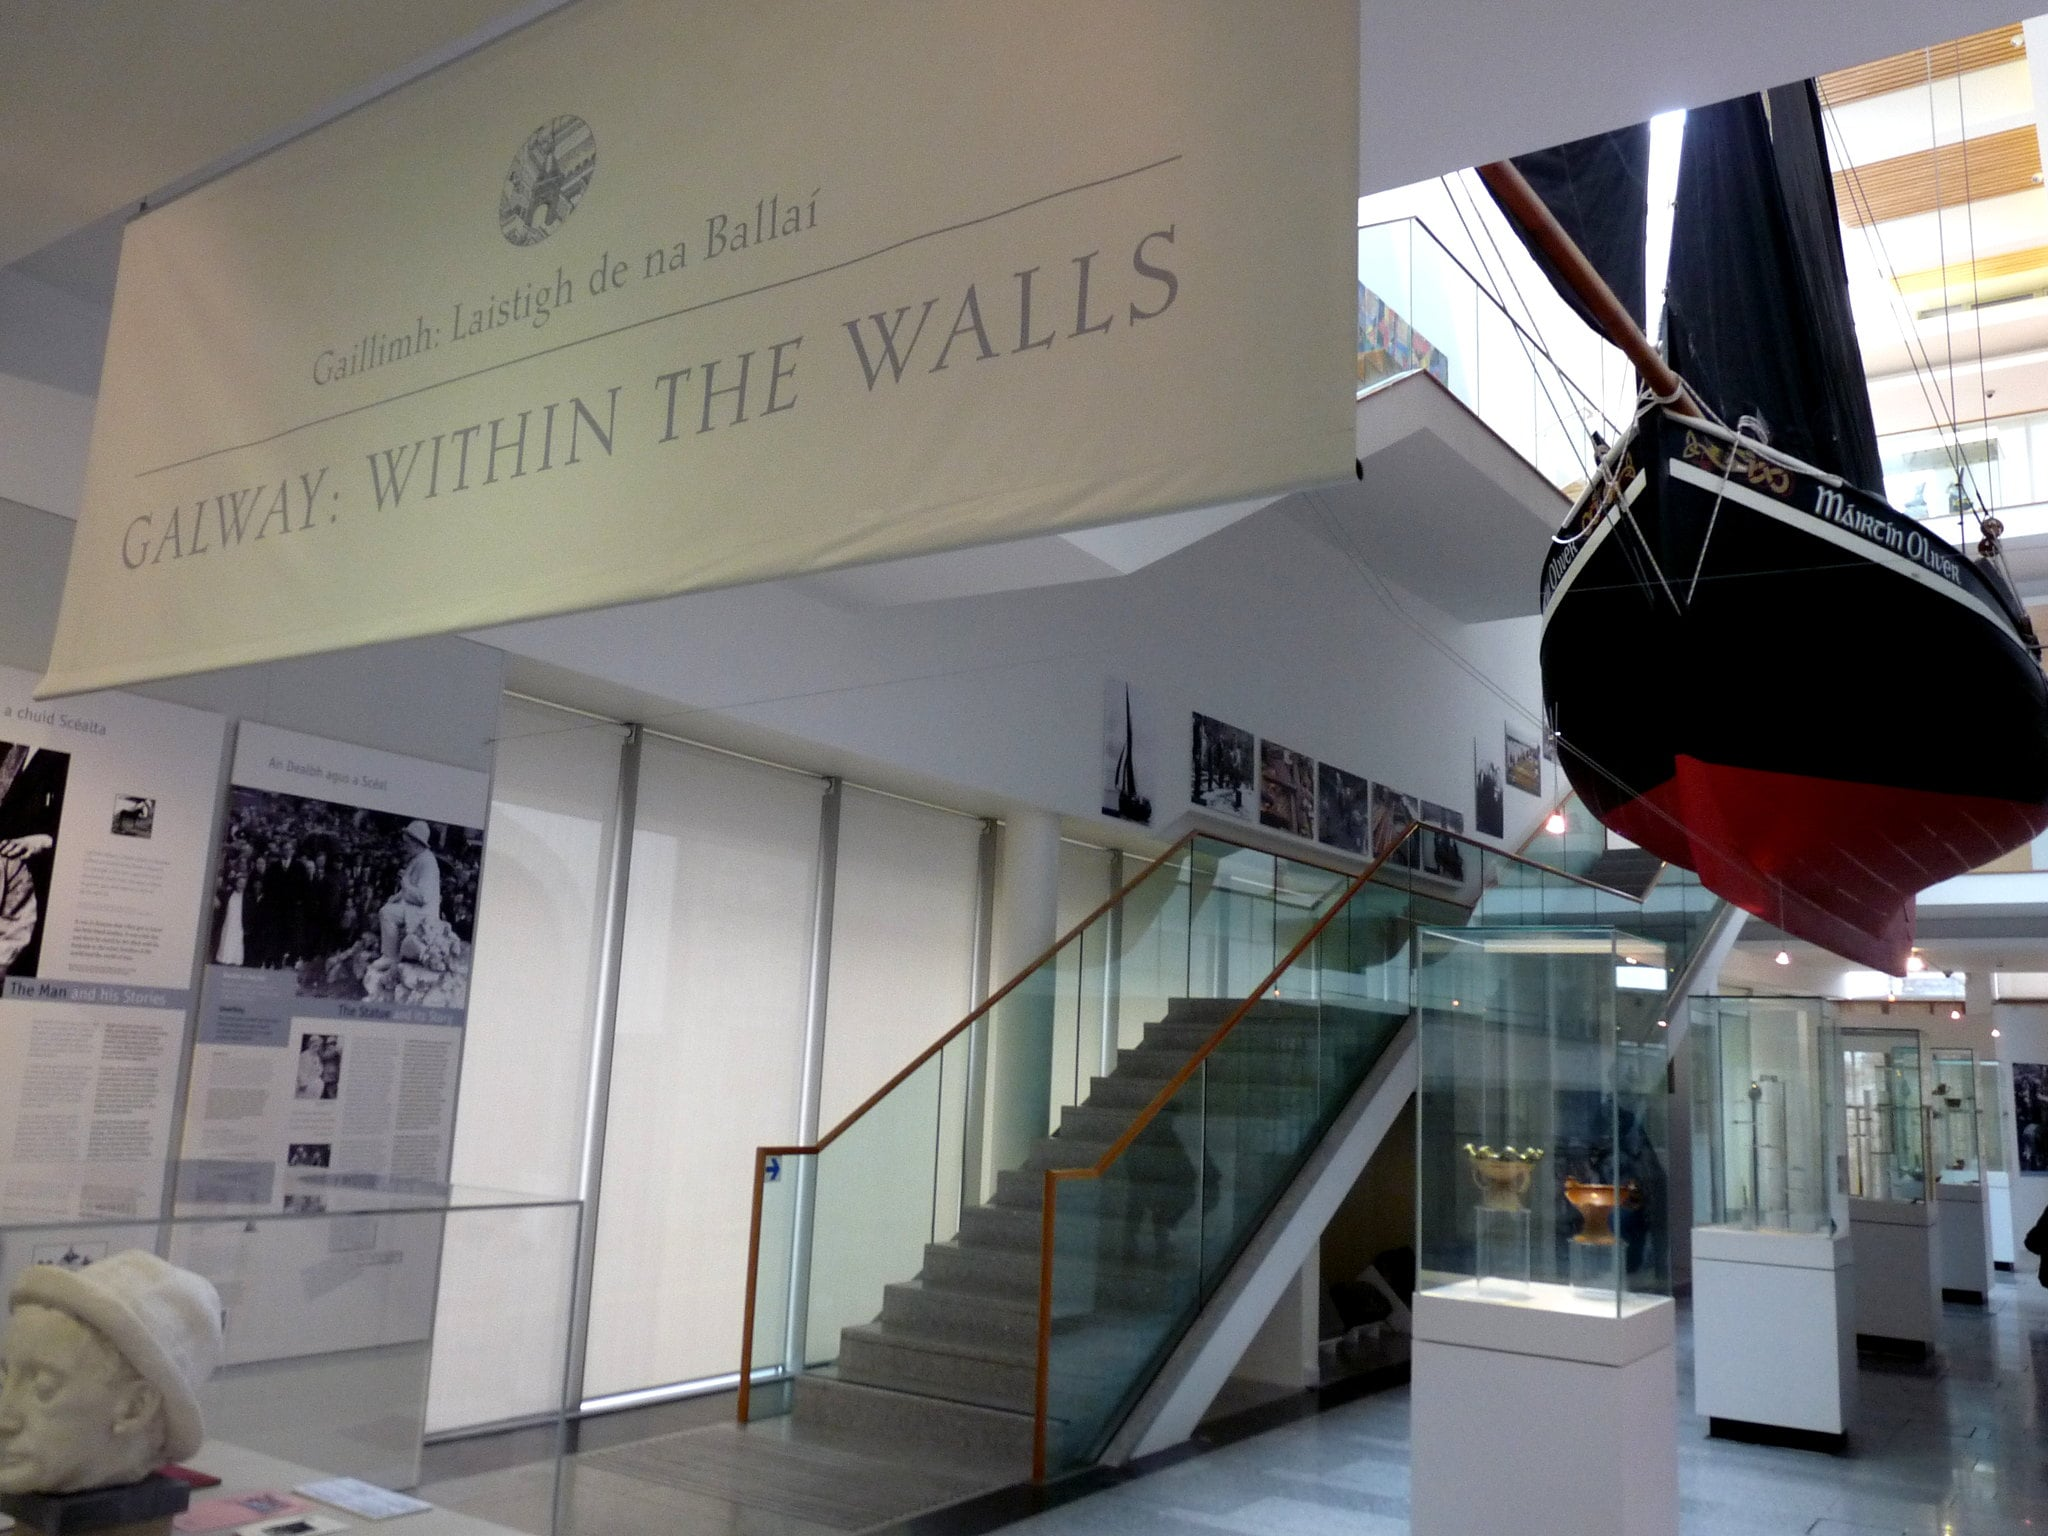 Checking out the Galway City Museum is a cool thing to do in Galway Ireland